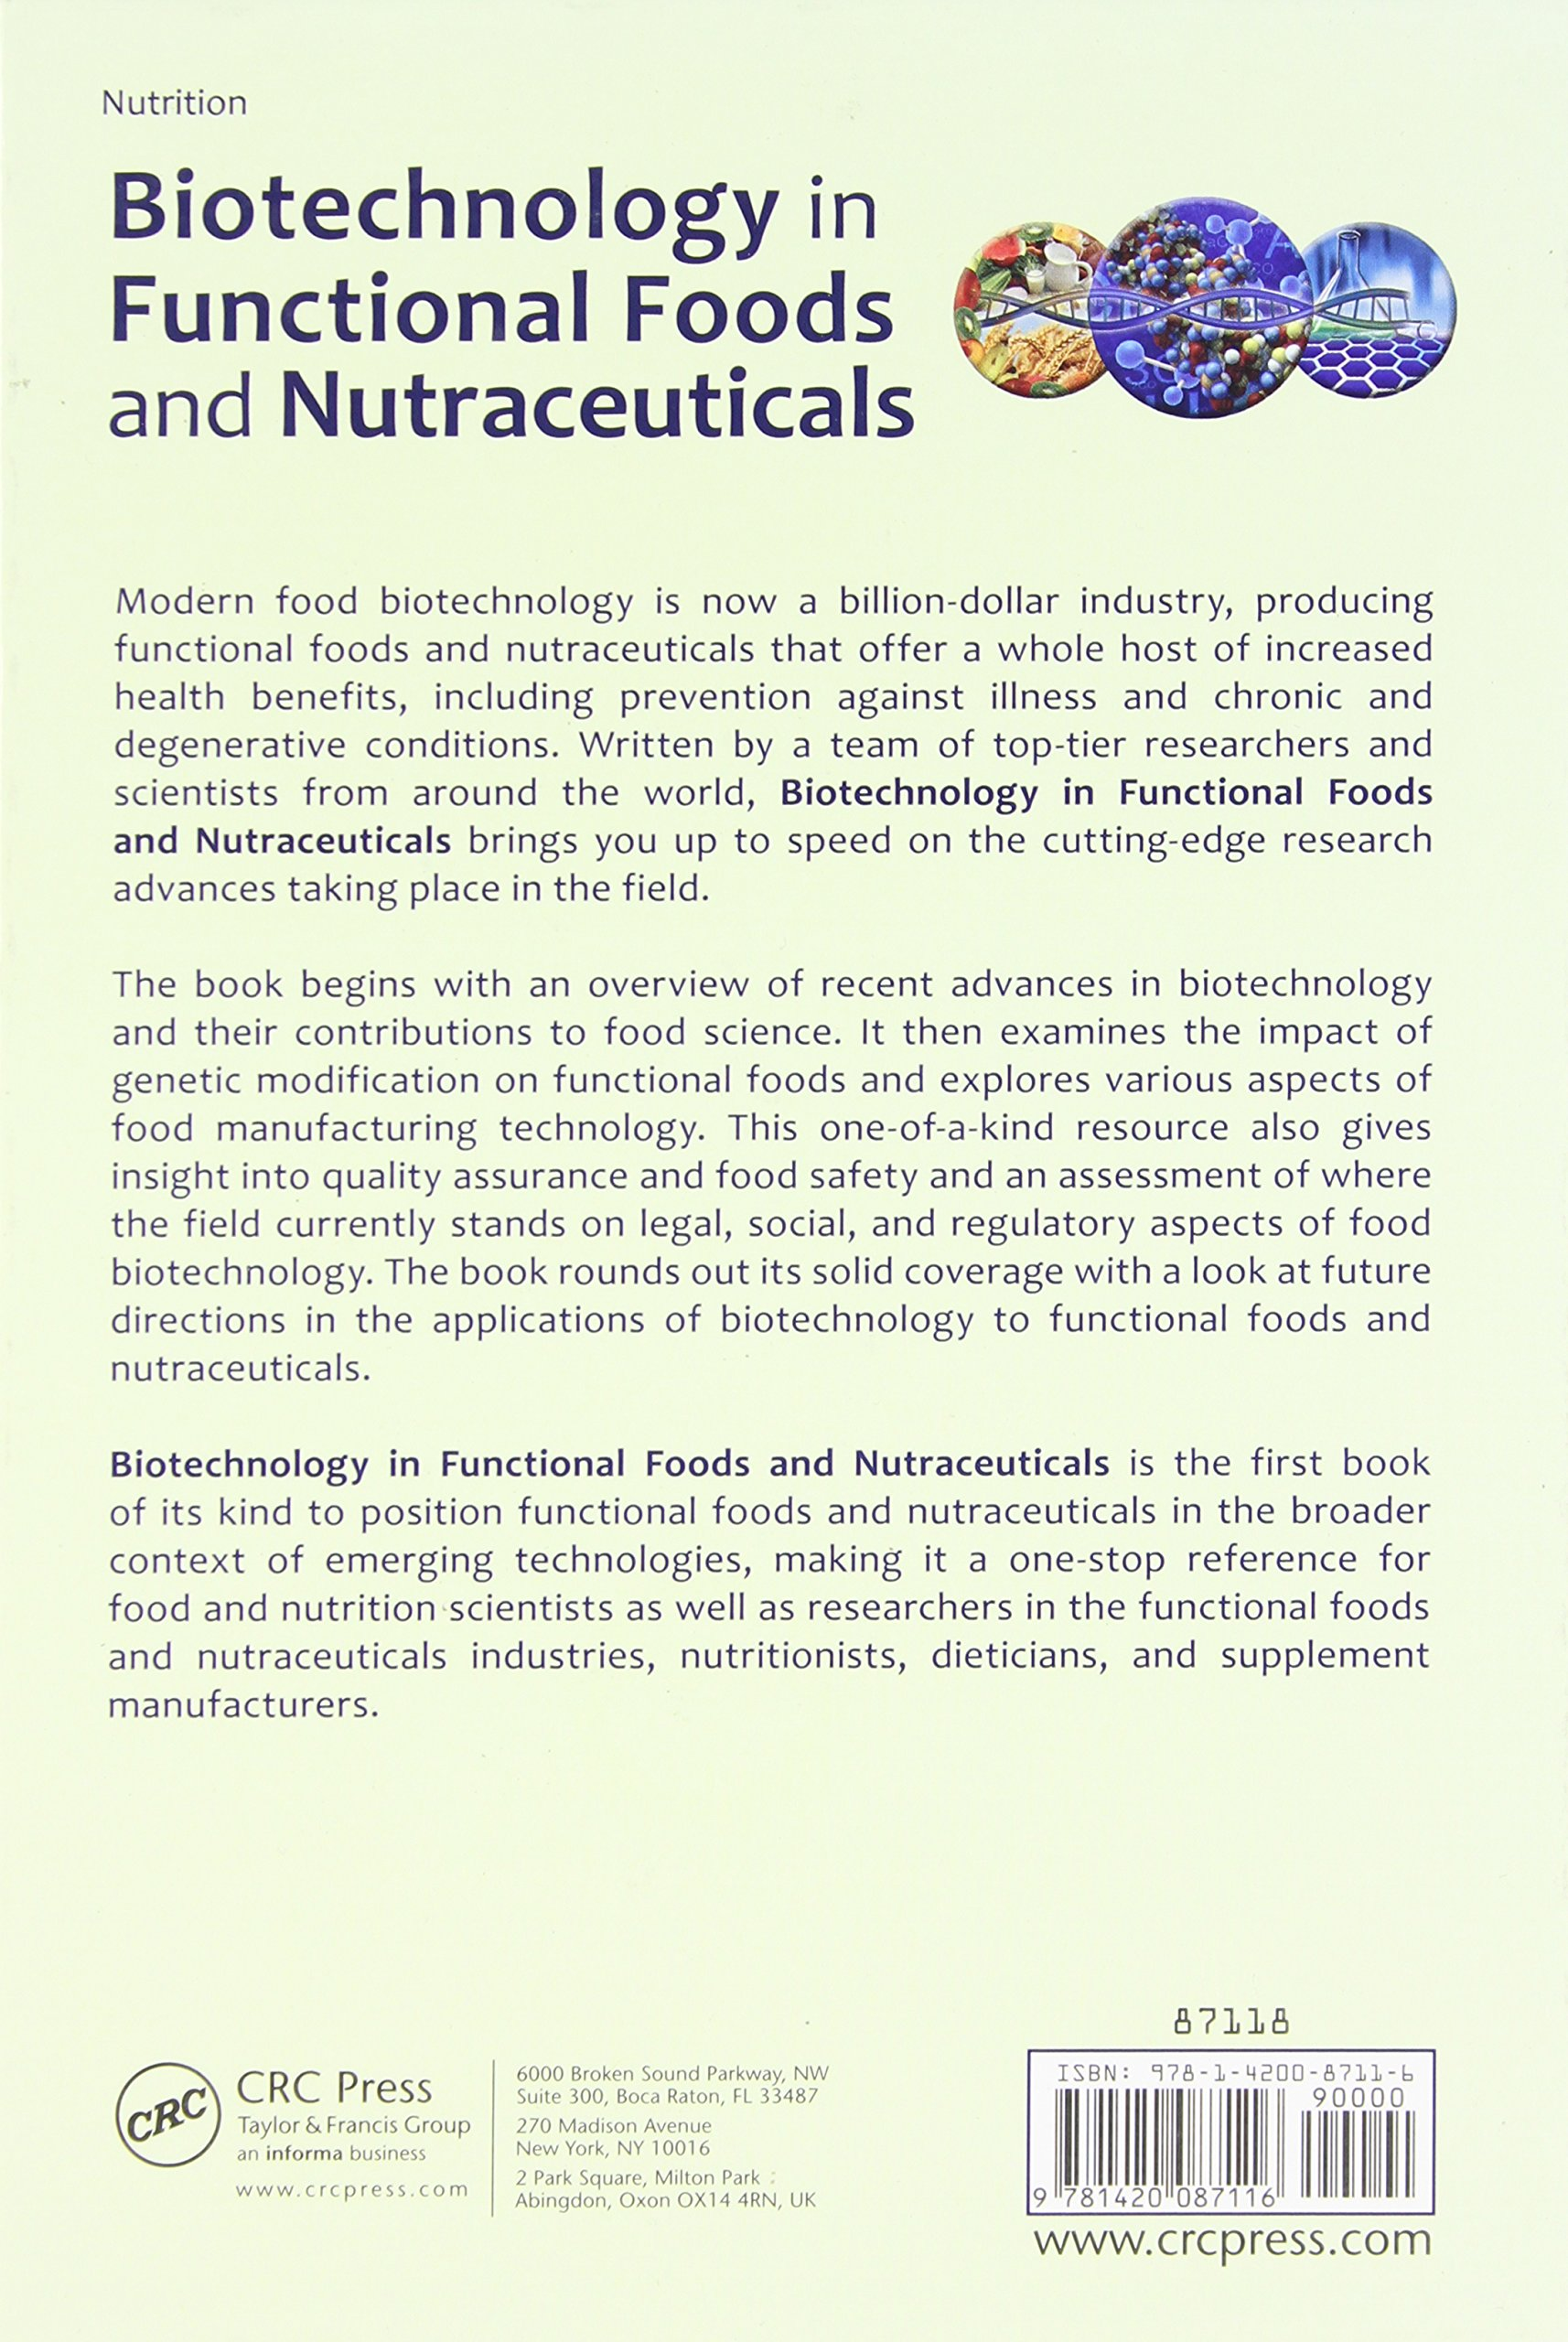 Buy Biotechnology in Functional Foods and Nutraceuticals Book Online at Low  Prices in India | Biotechnology in Functional Foods and Nutraceuticals  Reviews ...